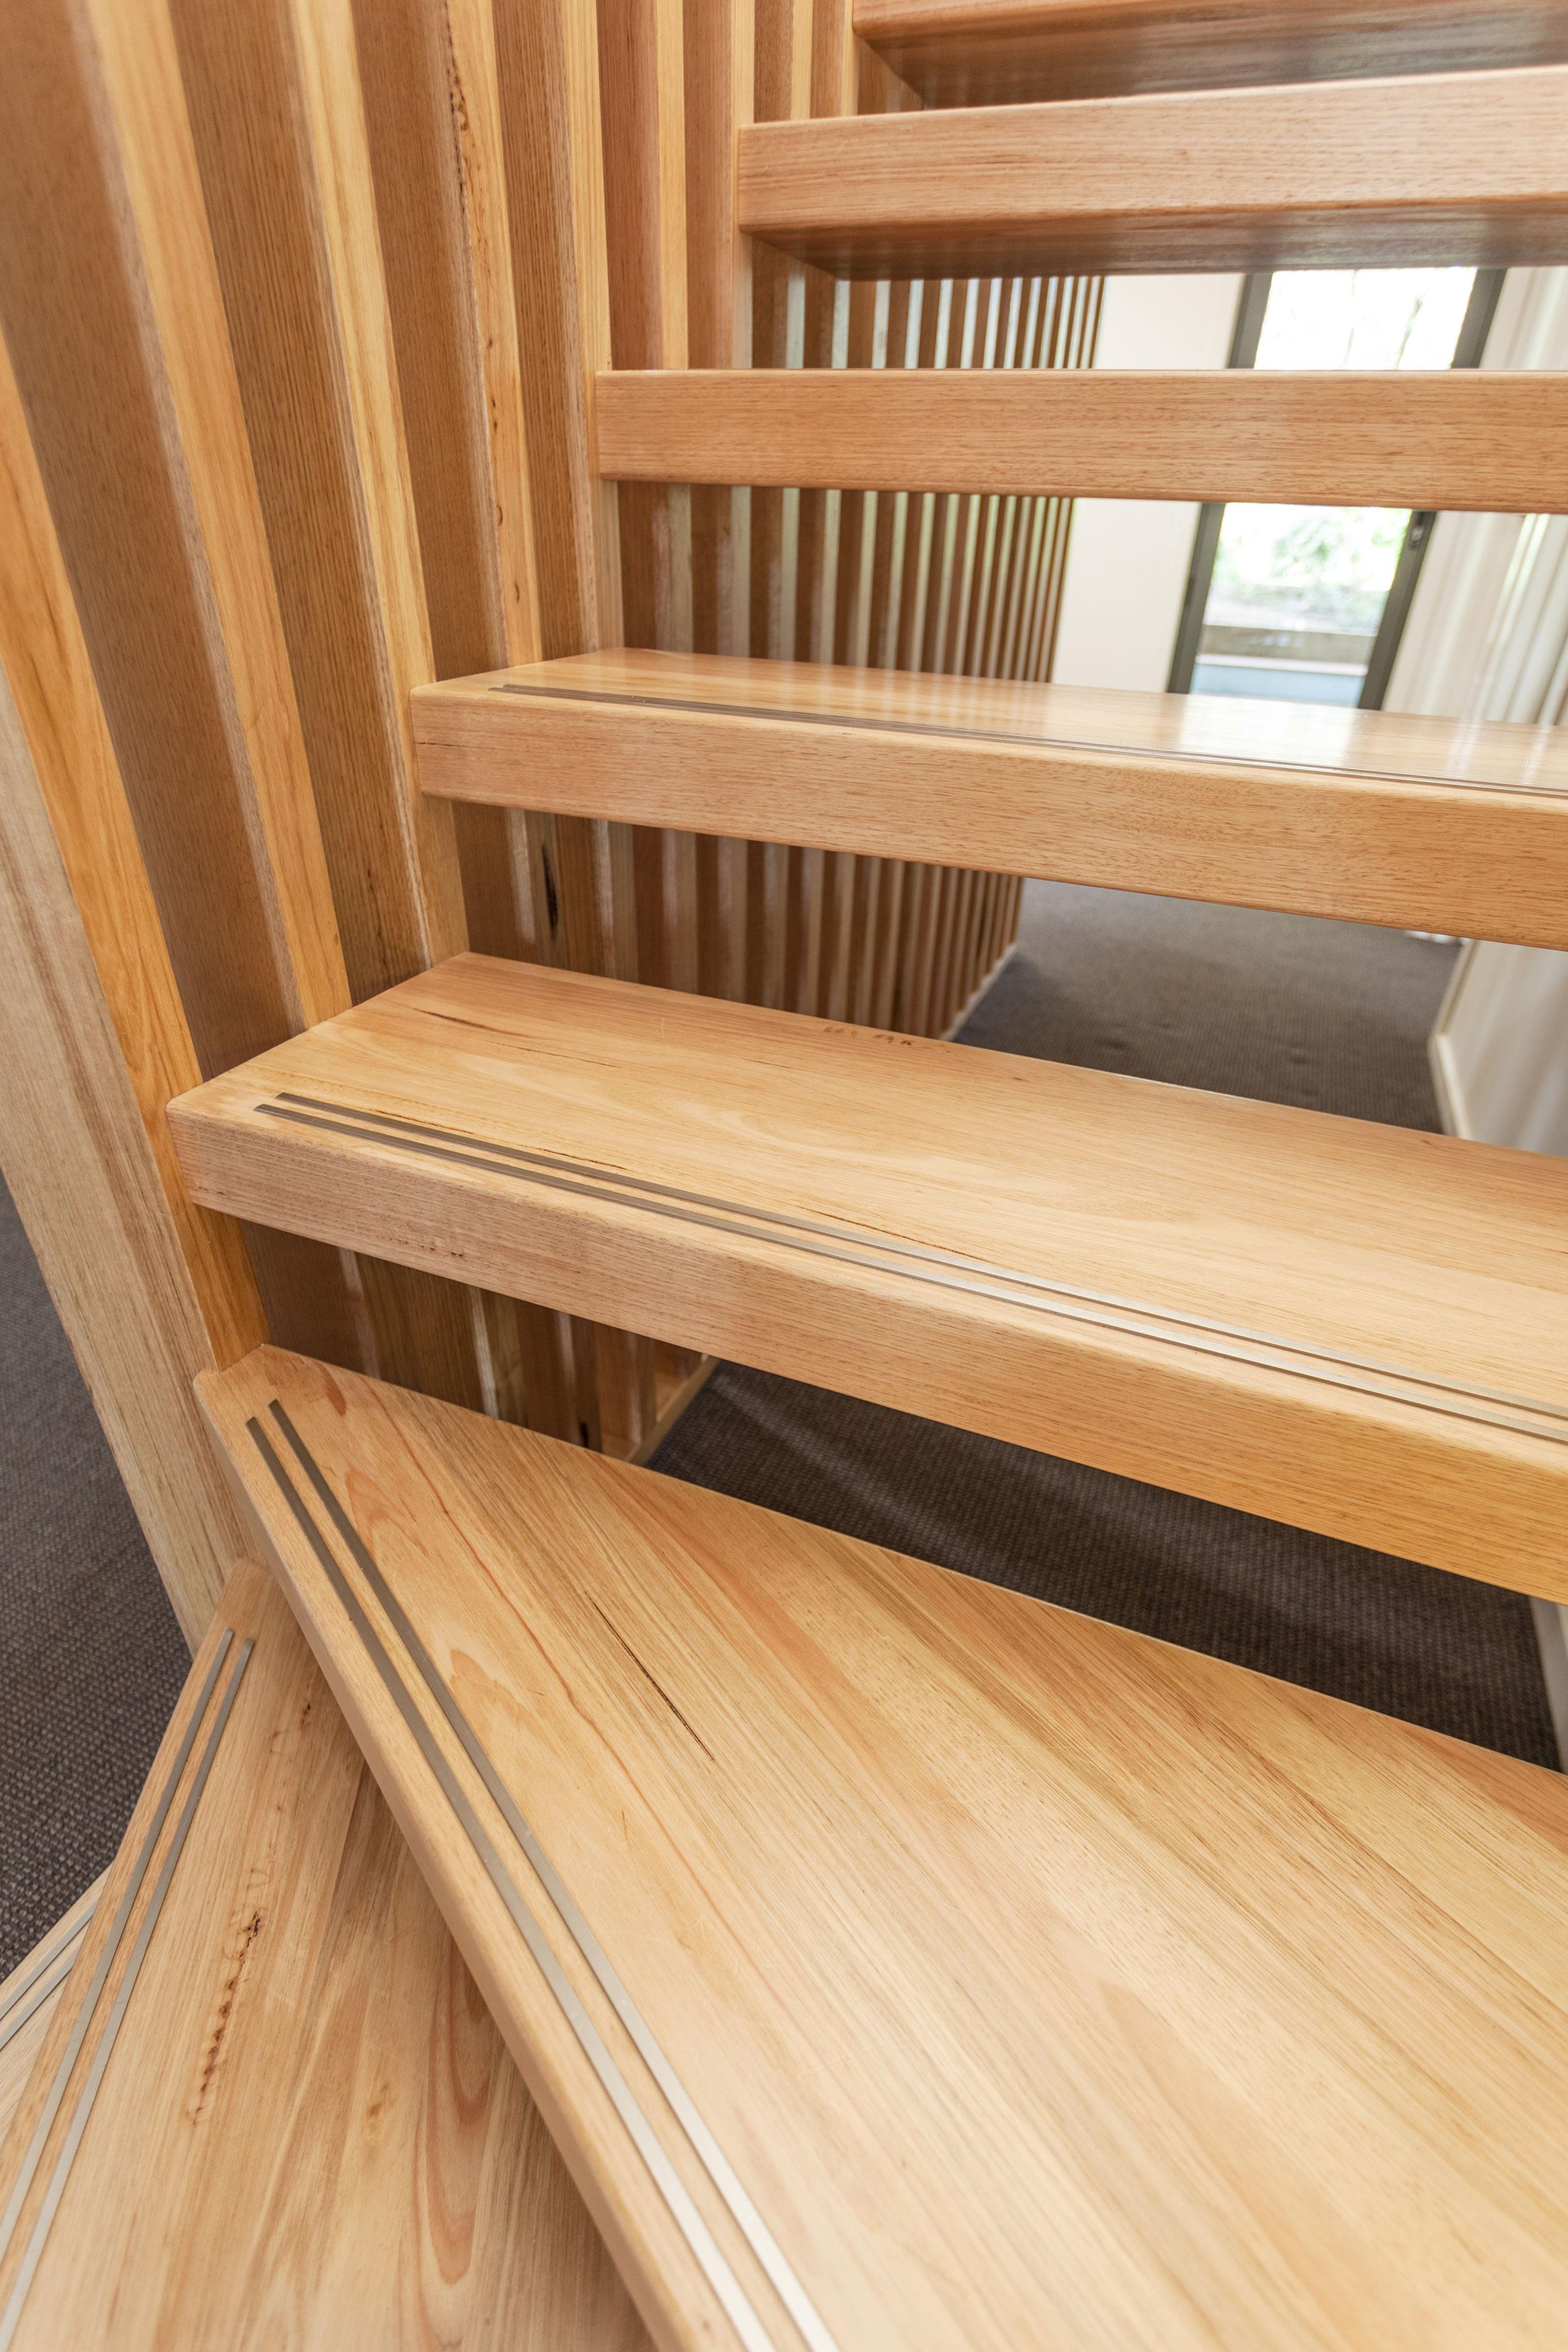 More intensive but just as decorative, metal or anti-slip inlays are available for embedding into your stair tread   Via Just Stairs